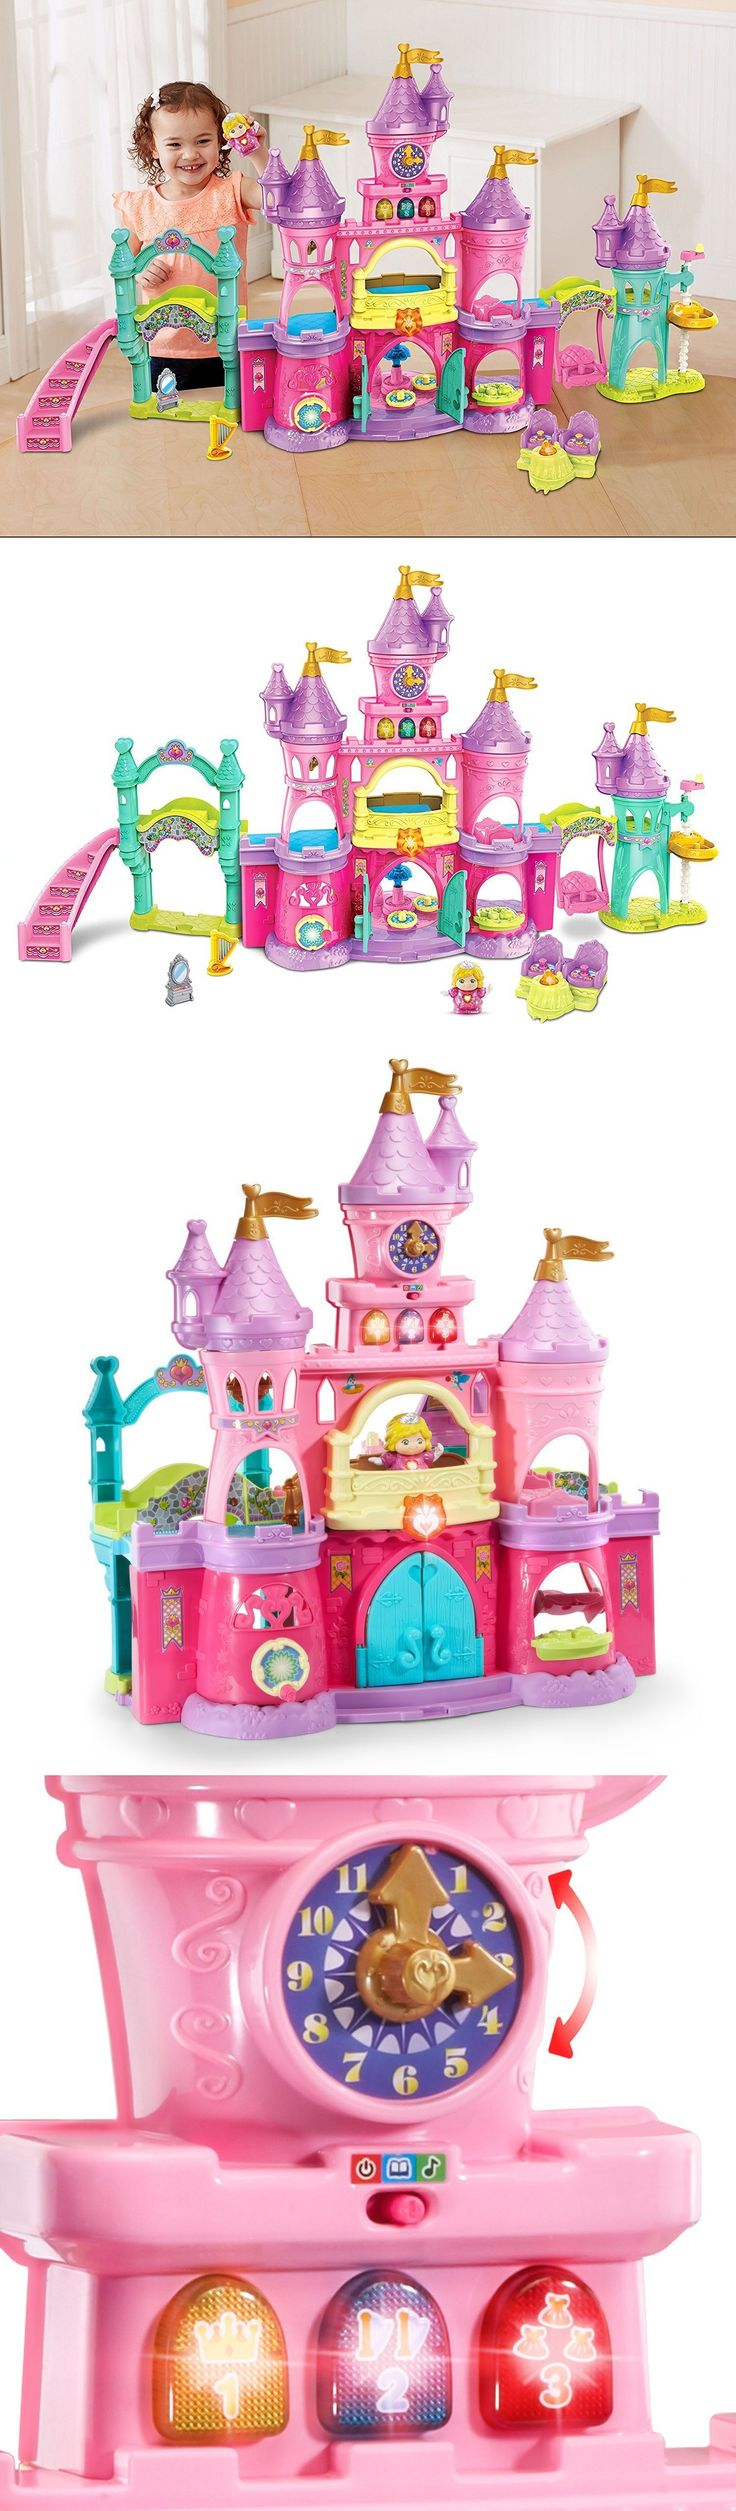 Other Preschool and Pretend Play 19181: Vtech Go! Go! Smart Friends Enchanted Princess Palace Brand New Free Shipping -> BUY IT NOW ONLY: $37.99 on eBay!